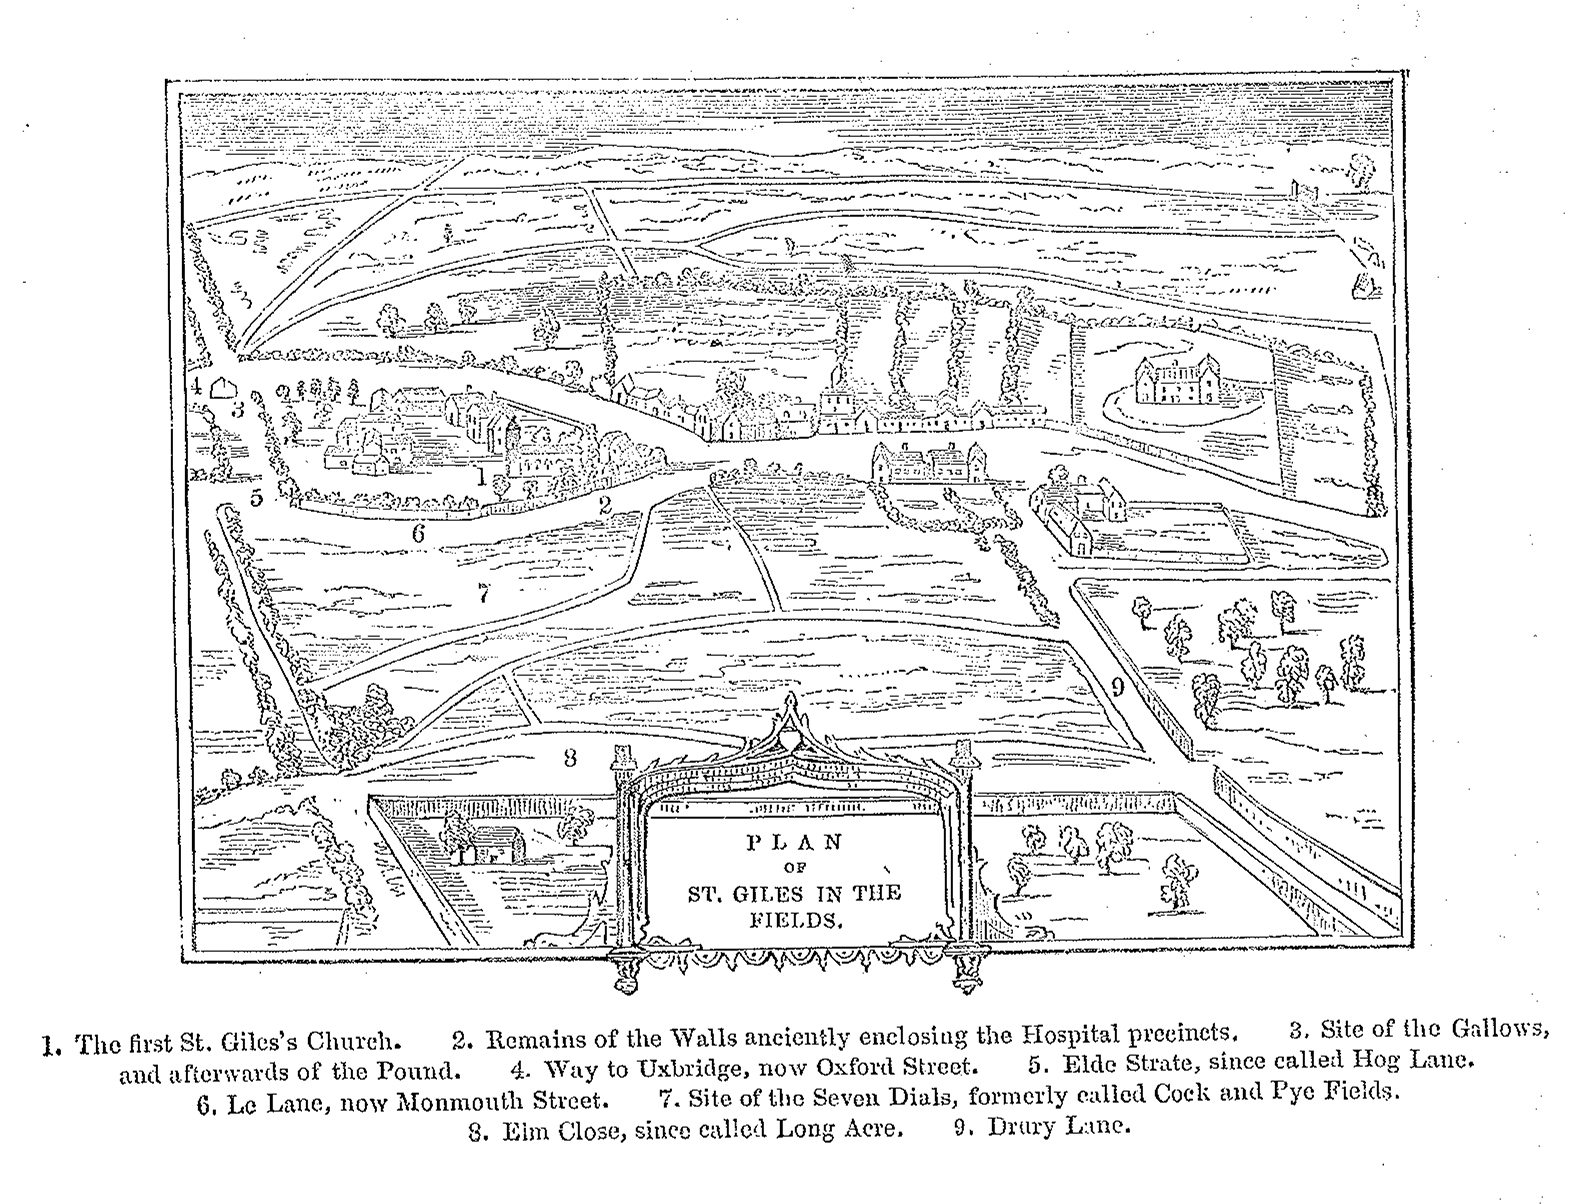 Plan of St Giles in the Fields - illustration from Knight's 'LONDON' 1842